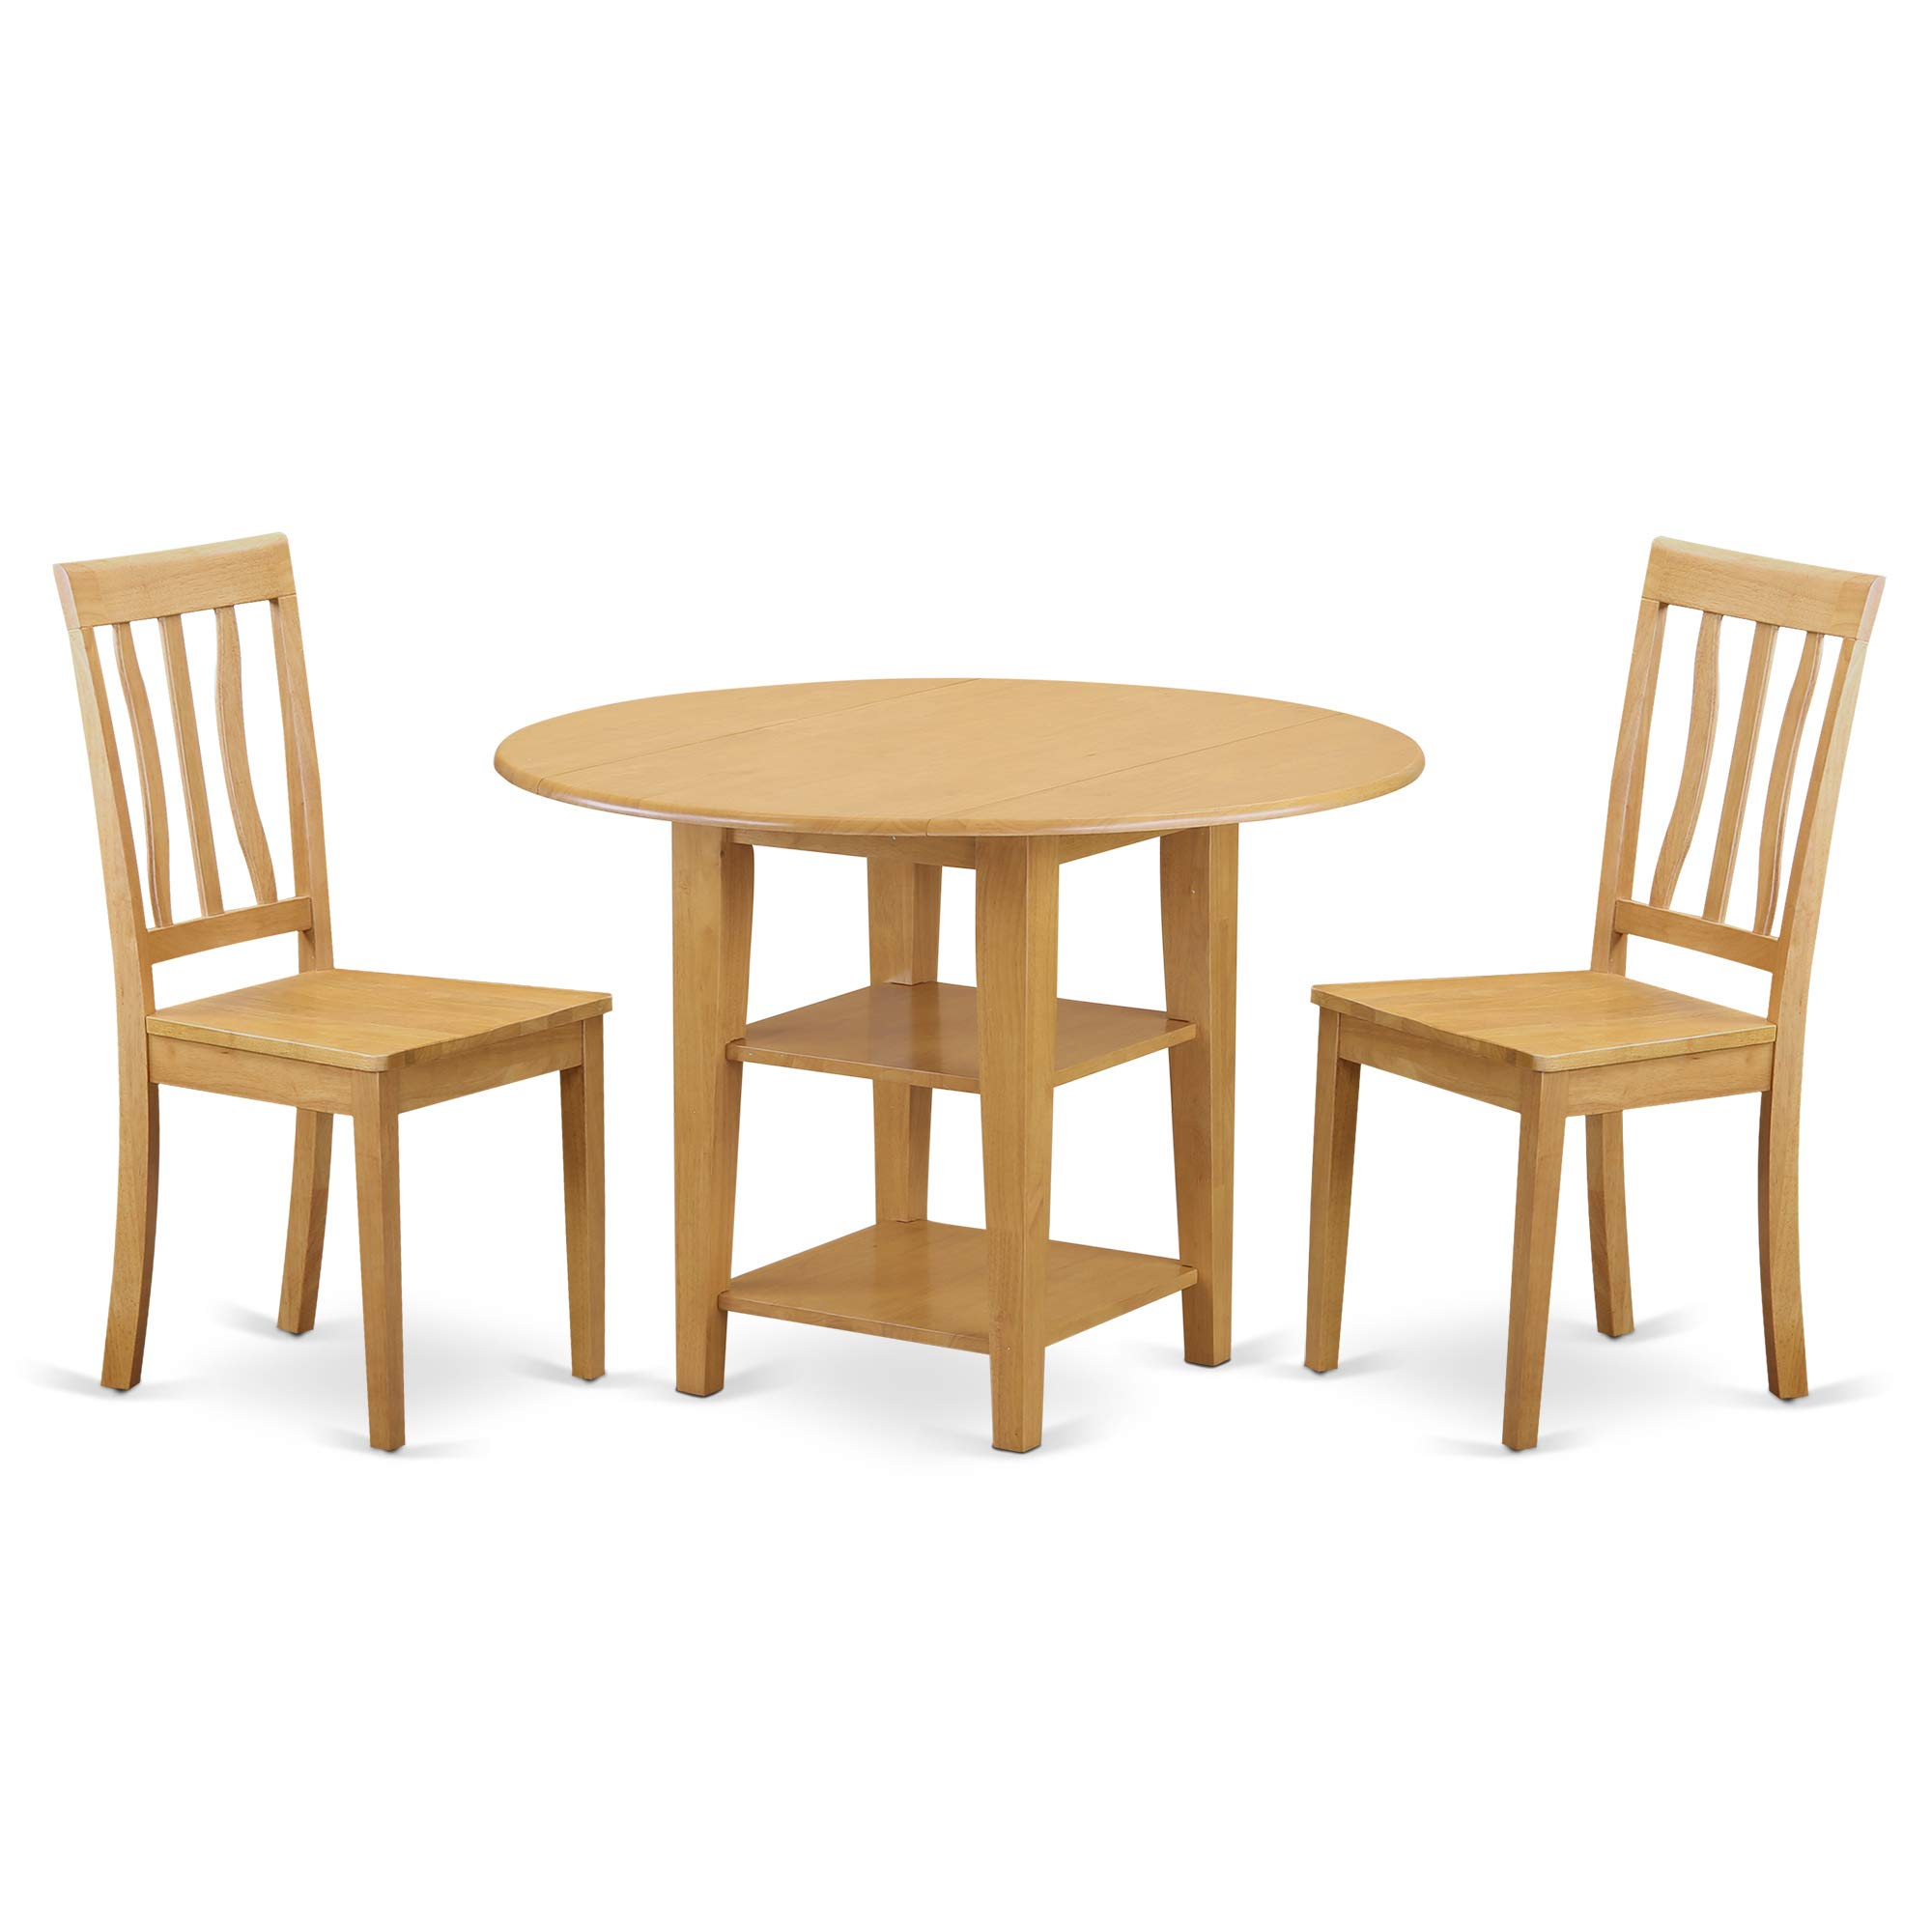 East West Furniture SUAN3-OAK-W Sudbury Set, Oak